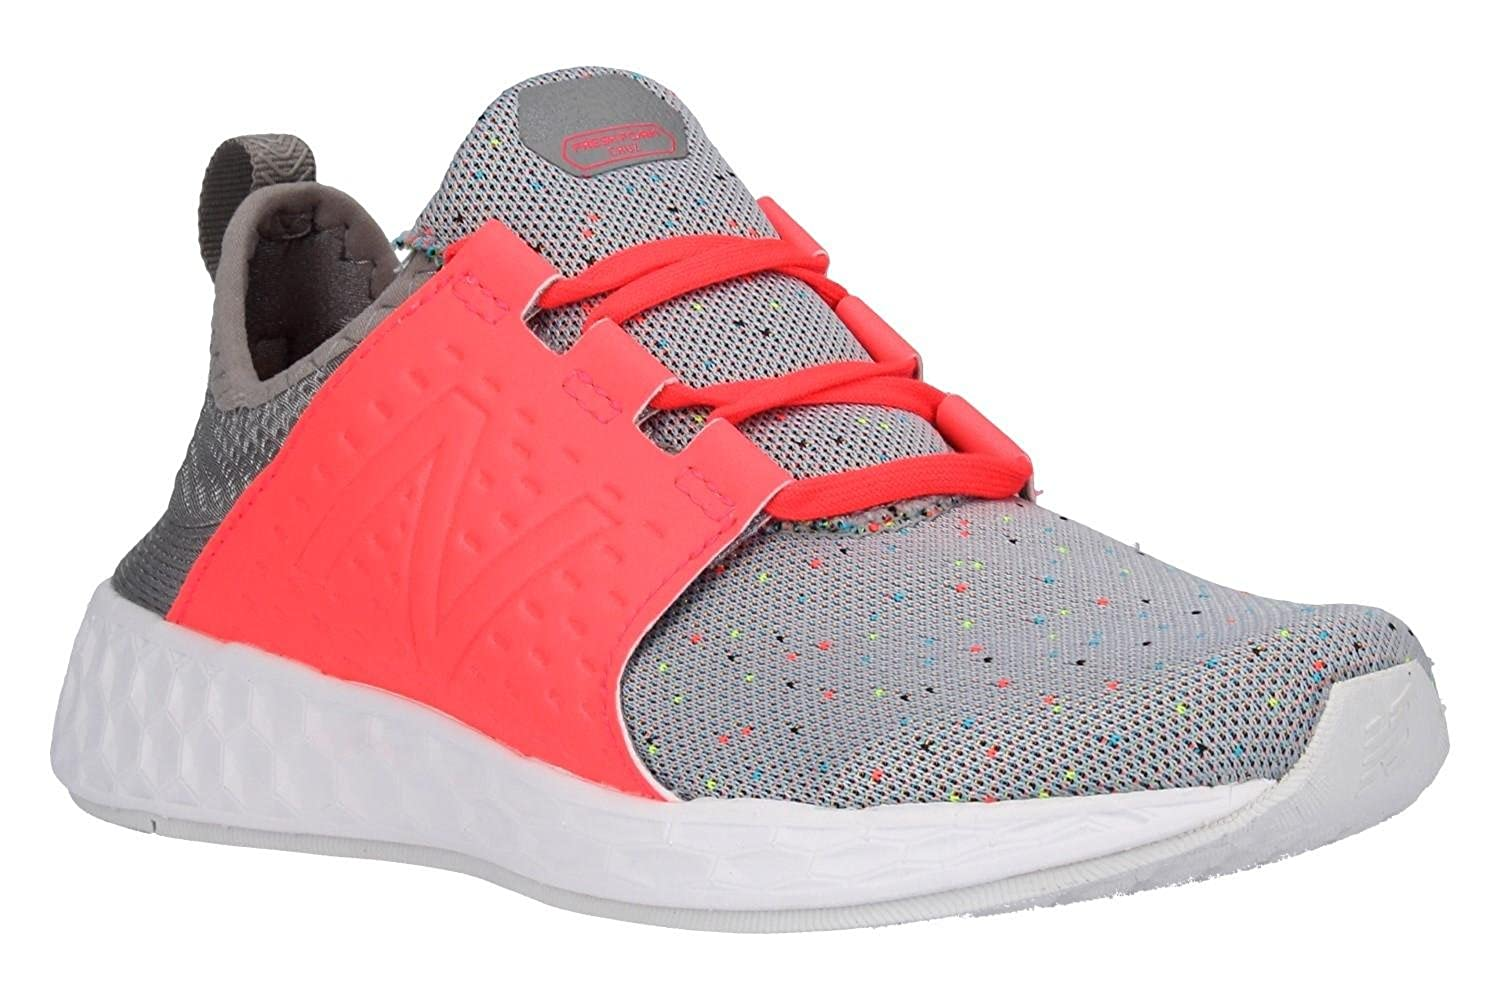 TALLA 36 EU. New Balance Fresh Foam Cruz Sport Pack Reflective, Zapatillas de Running para Mujer